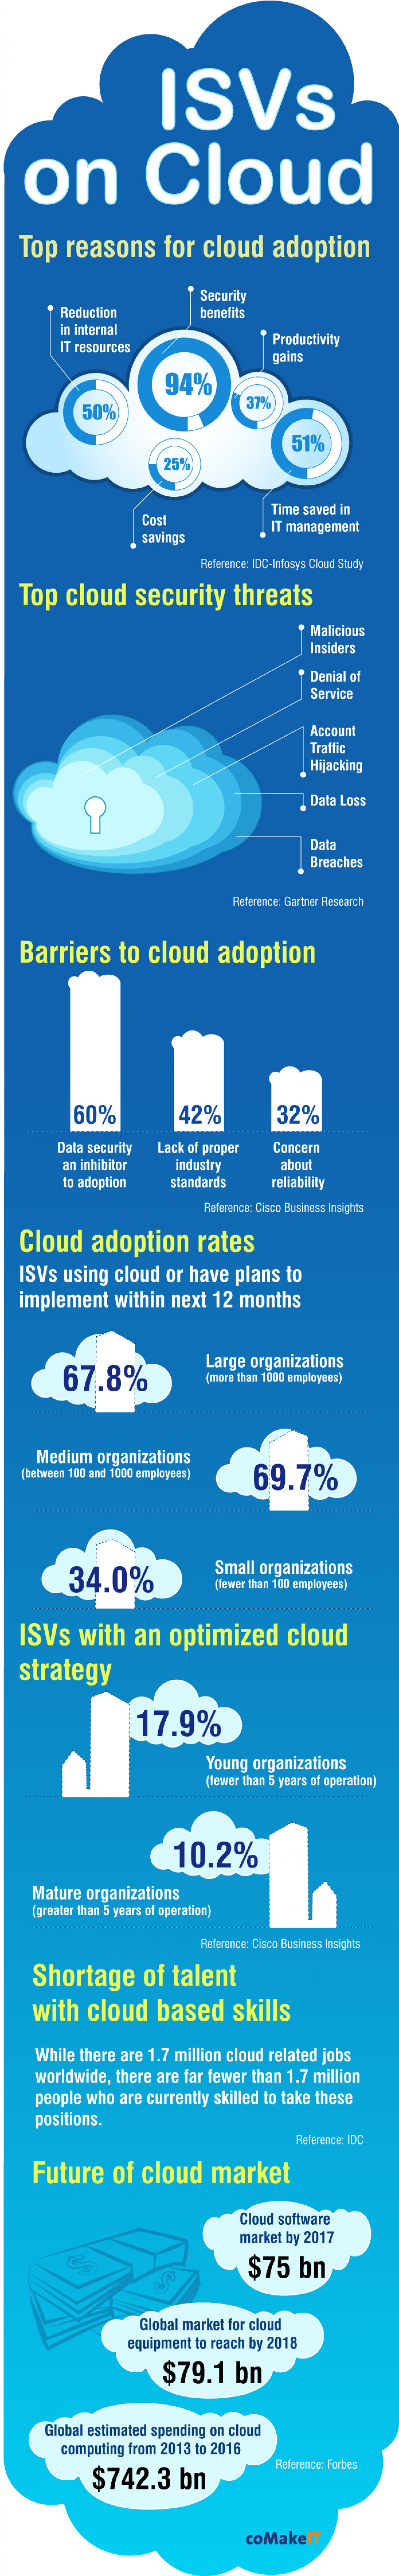 How Cloud is Creating Value for Software Businesses Infographic